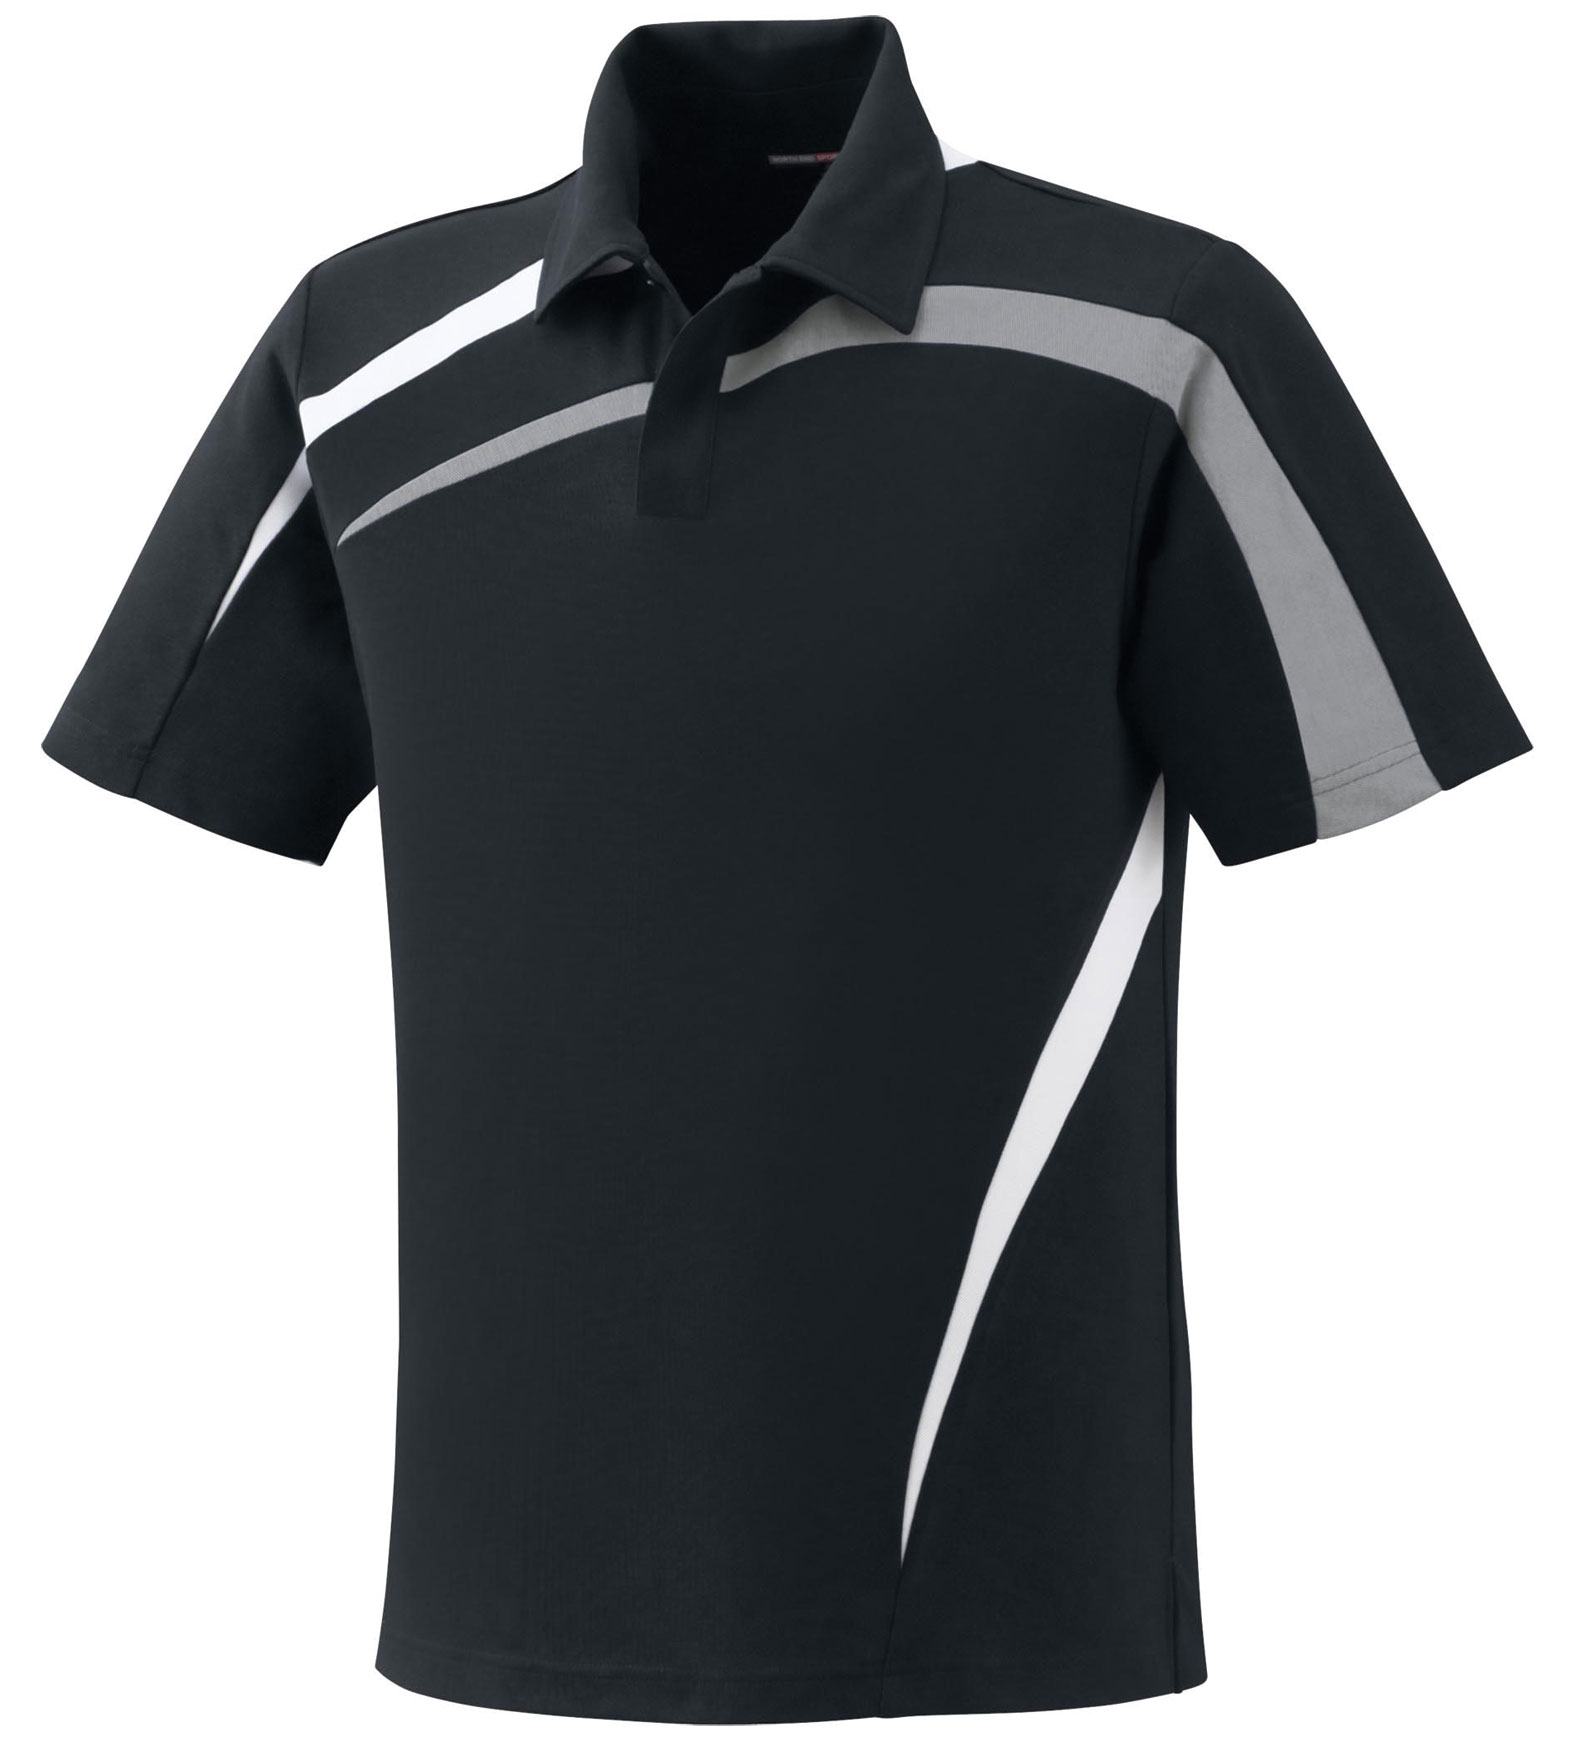 d6ee967f Mens Performance Polyester Pique Color-Block Polo - Design Online or Buy It  Blank